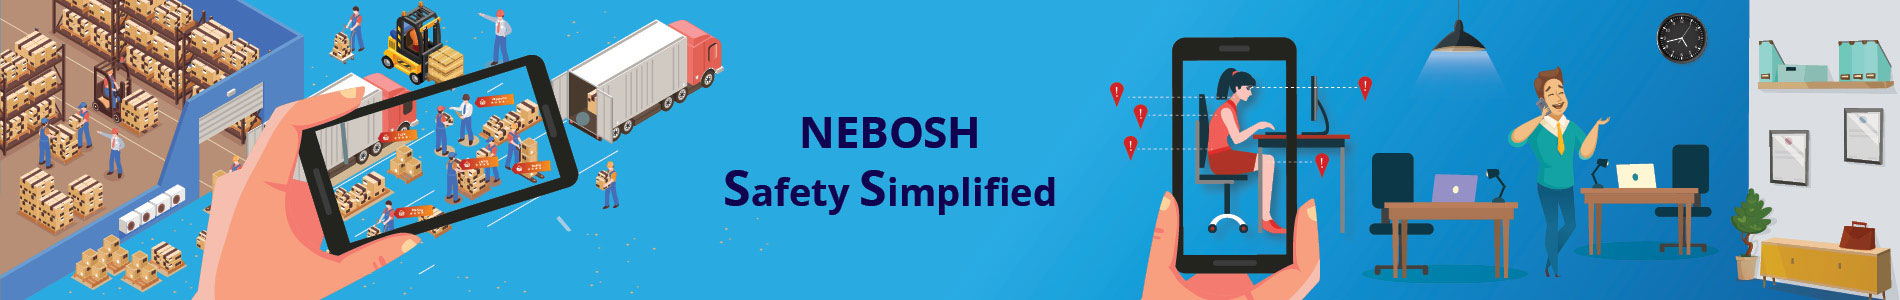 nebosh-safety-simplified